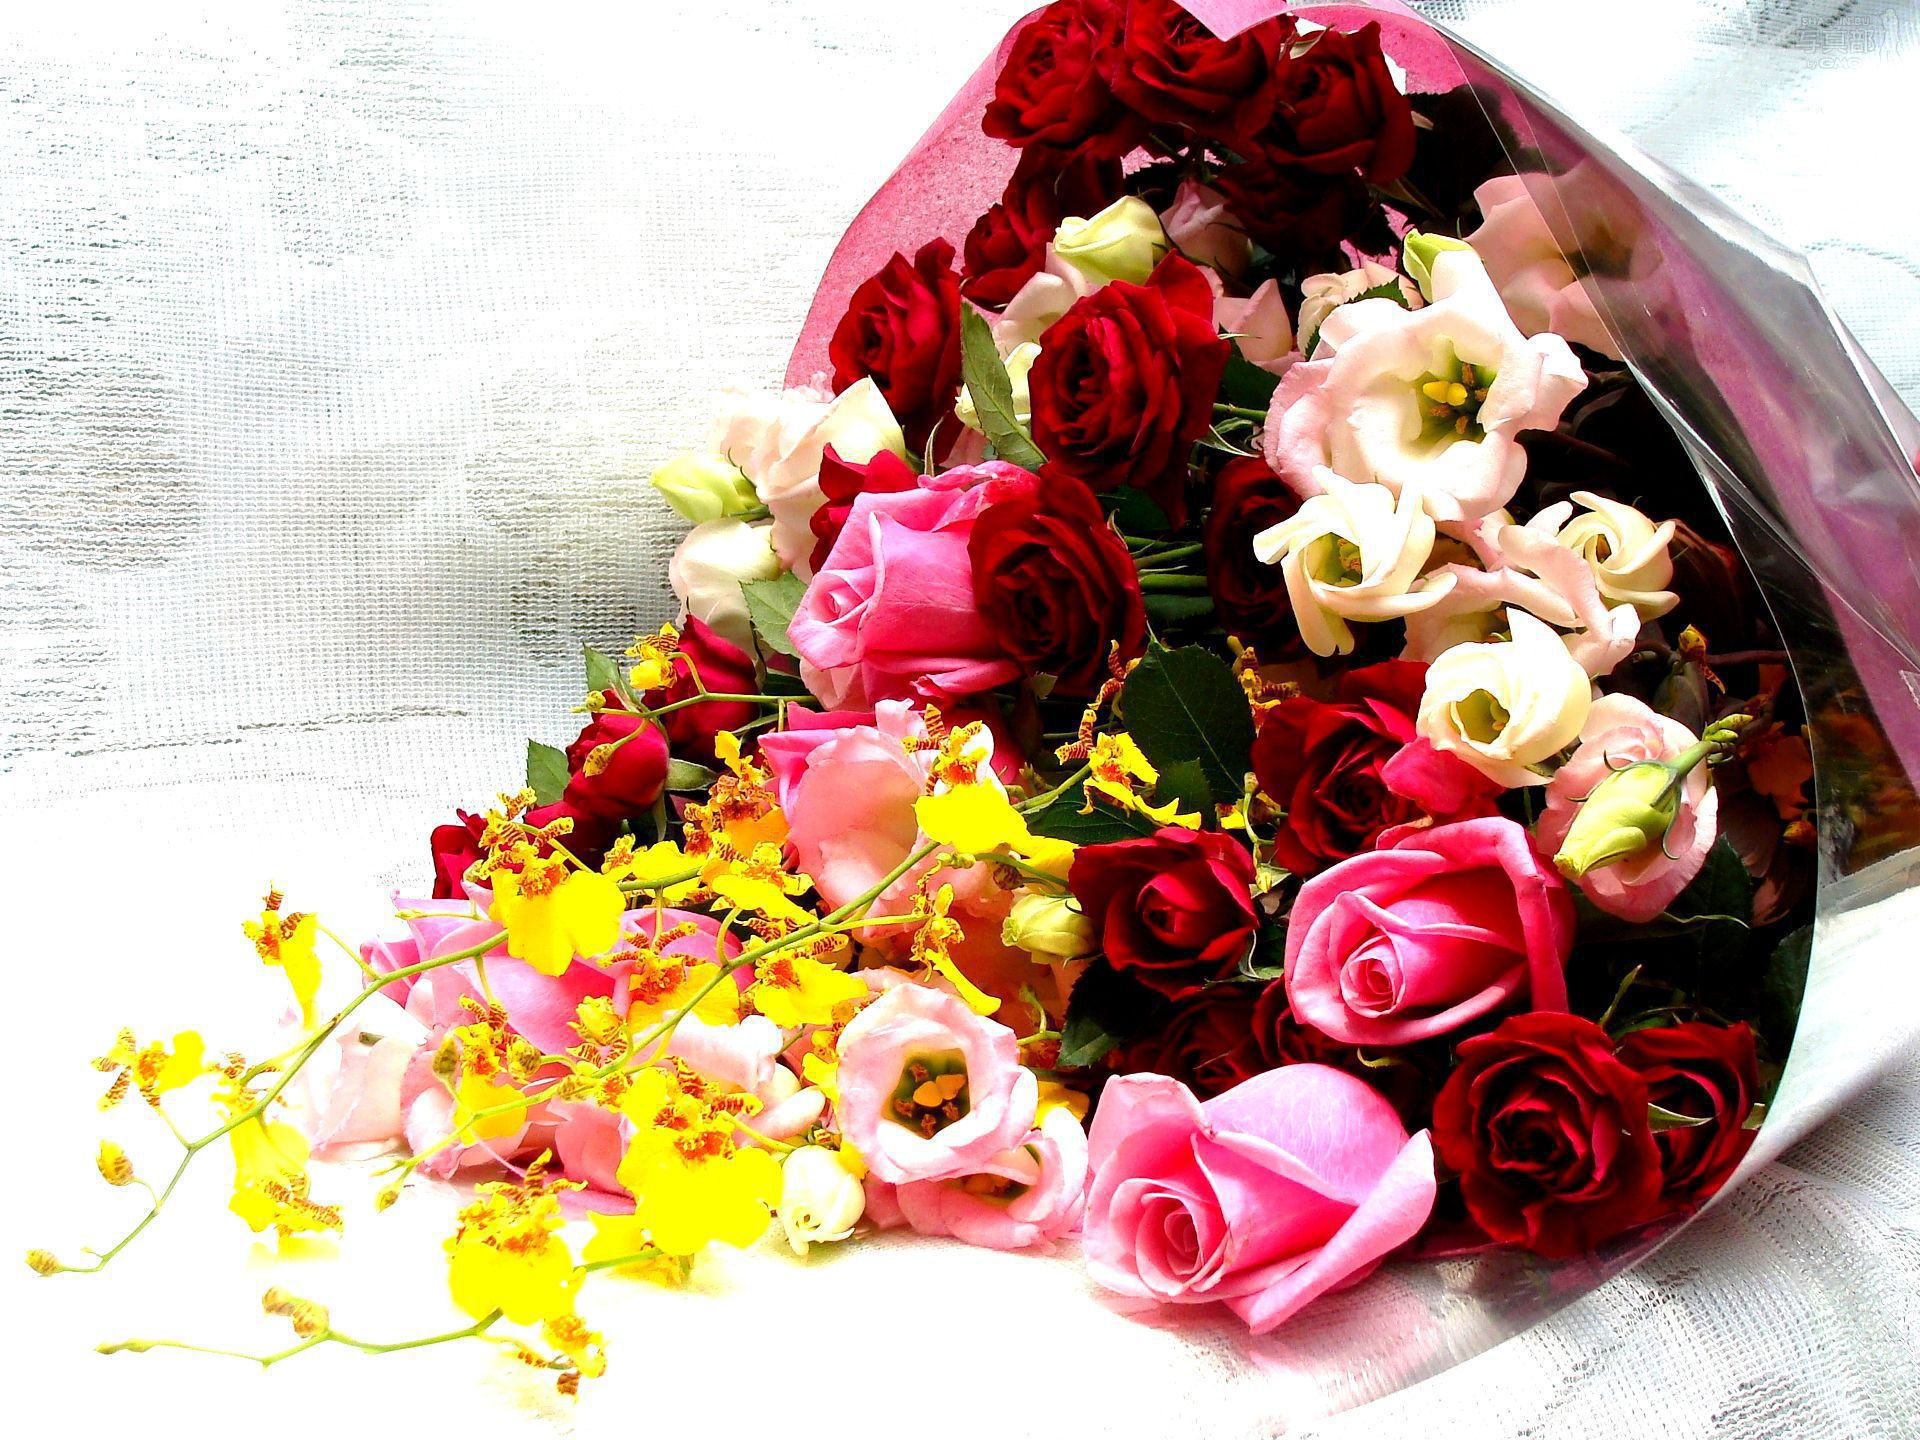 Bouquet Of Flowers High Quality Wallpapers